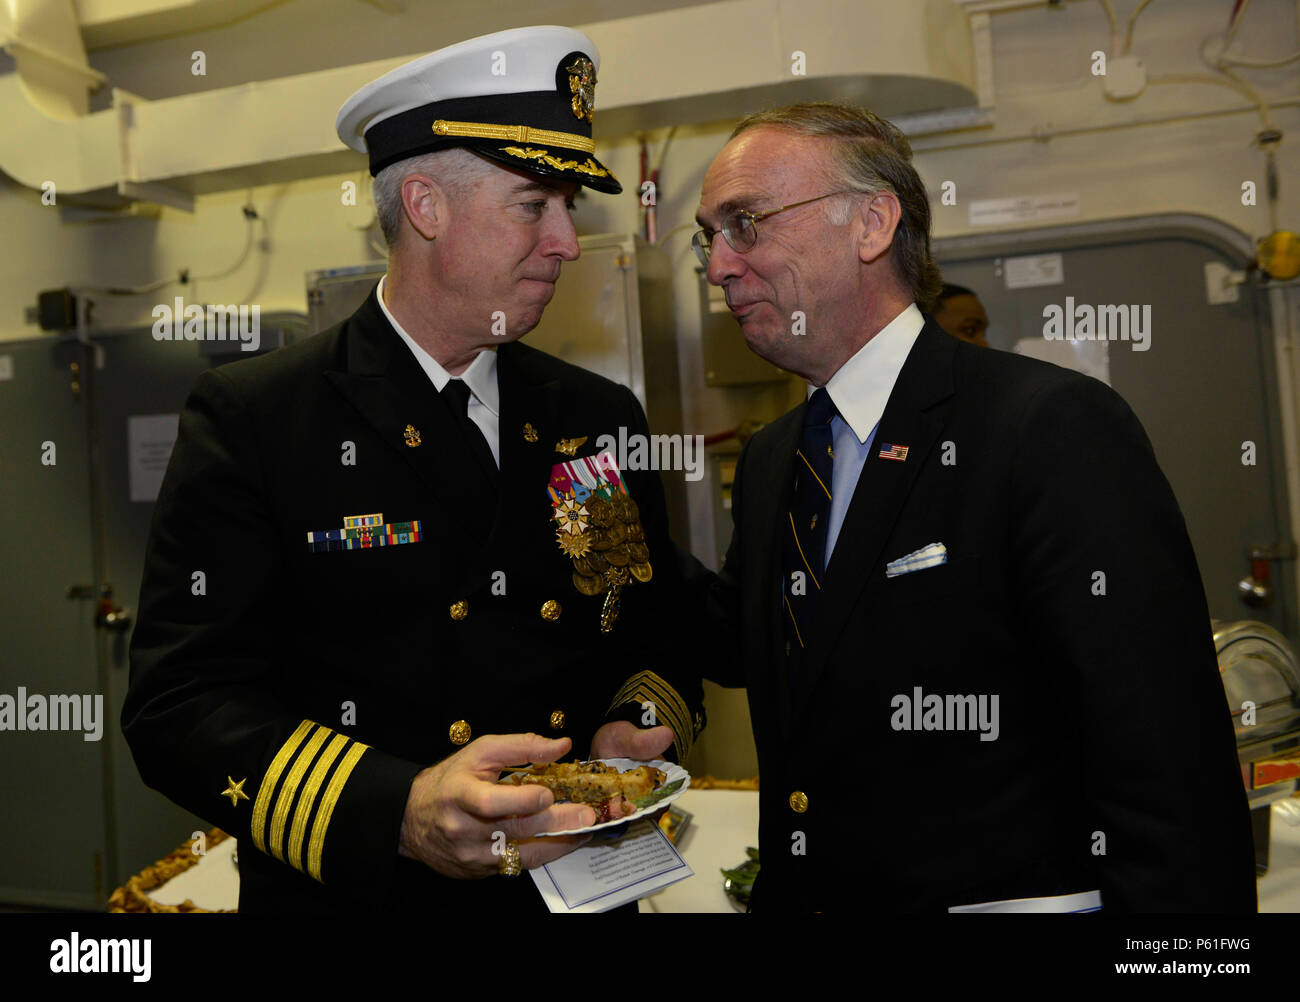 NEWPORT NEWS, Va., (April 8, 2016) -- Capt. John F. Meier socializes with Greg Willard, co-chairman of the Gerald R. Ford Commissioning Committee, during a reception following a change of command in the ship's hangar bay. Ford is the first of a new class of aircraft carriers currently under construction by Huntington Ingalls Newport News Shipbuilding. (U.S. Navy photo by Mass Communication Specialist Seaman Apprentice Gitte Schirrmacher/Released) - Stock Image